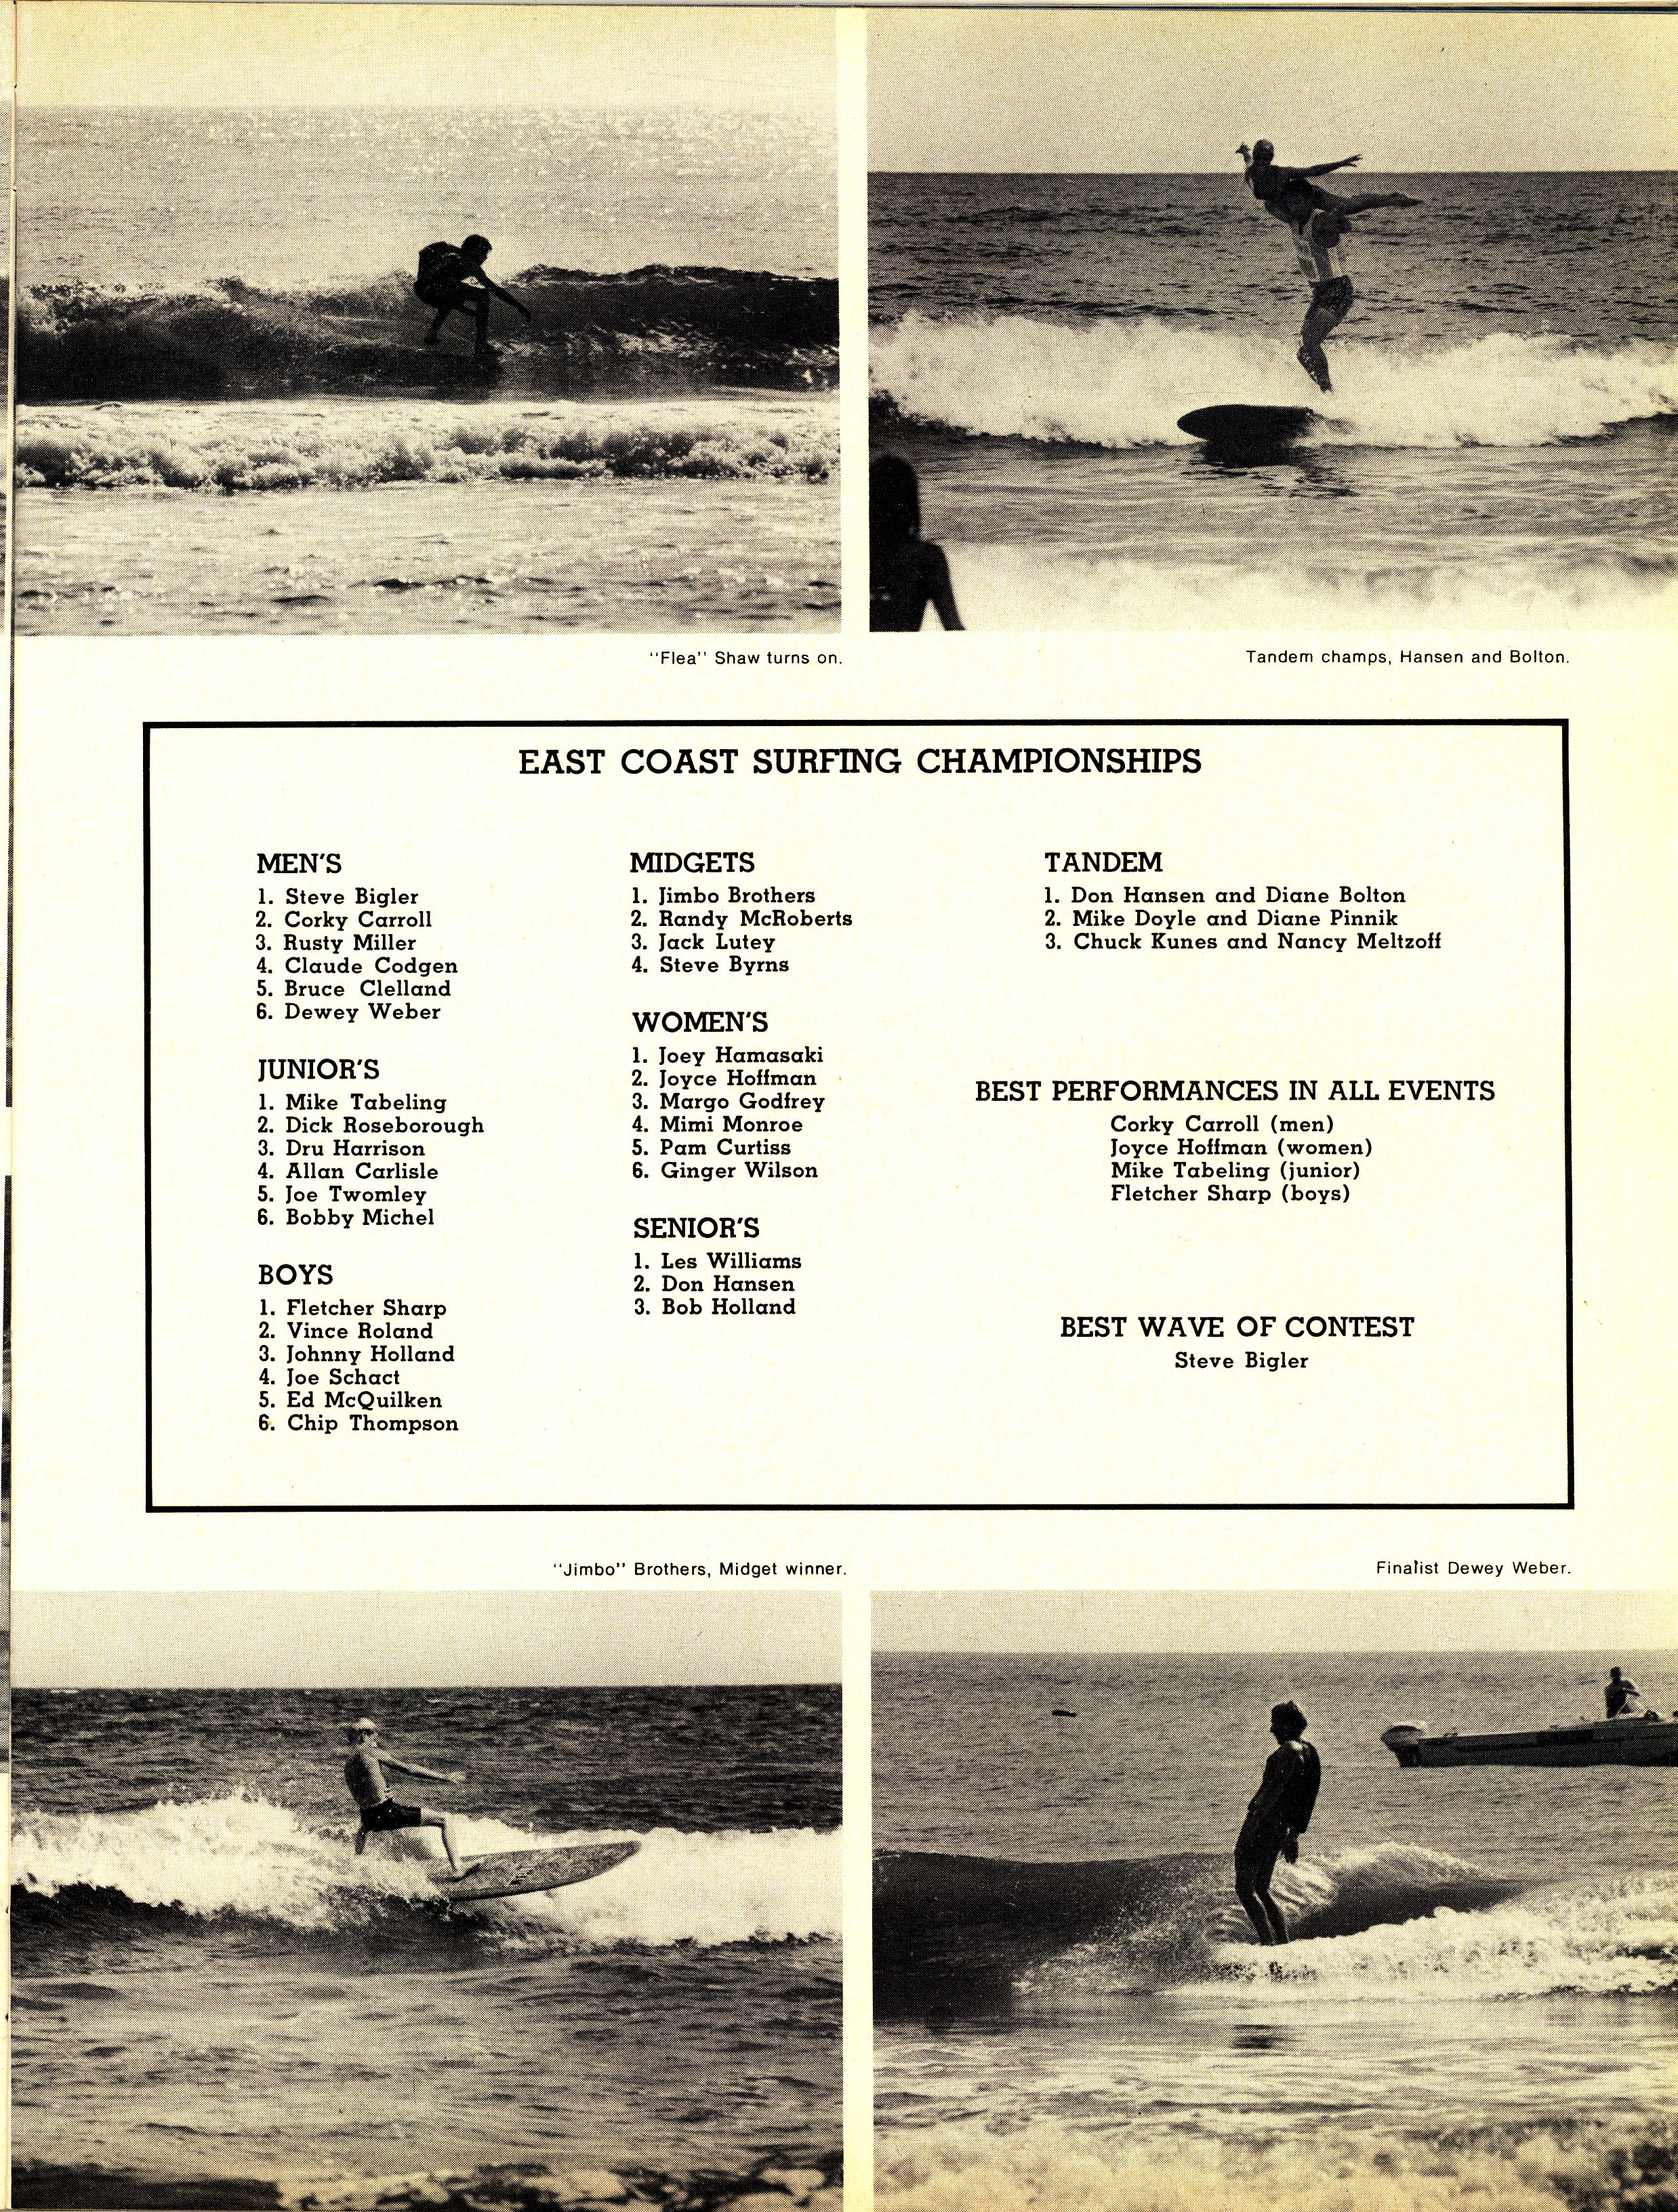 Pin By Timothy Sullivan On Surf Mags Ads Vintages Photos Surfing Photo Vintage Photos